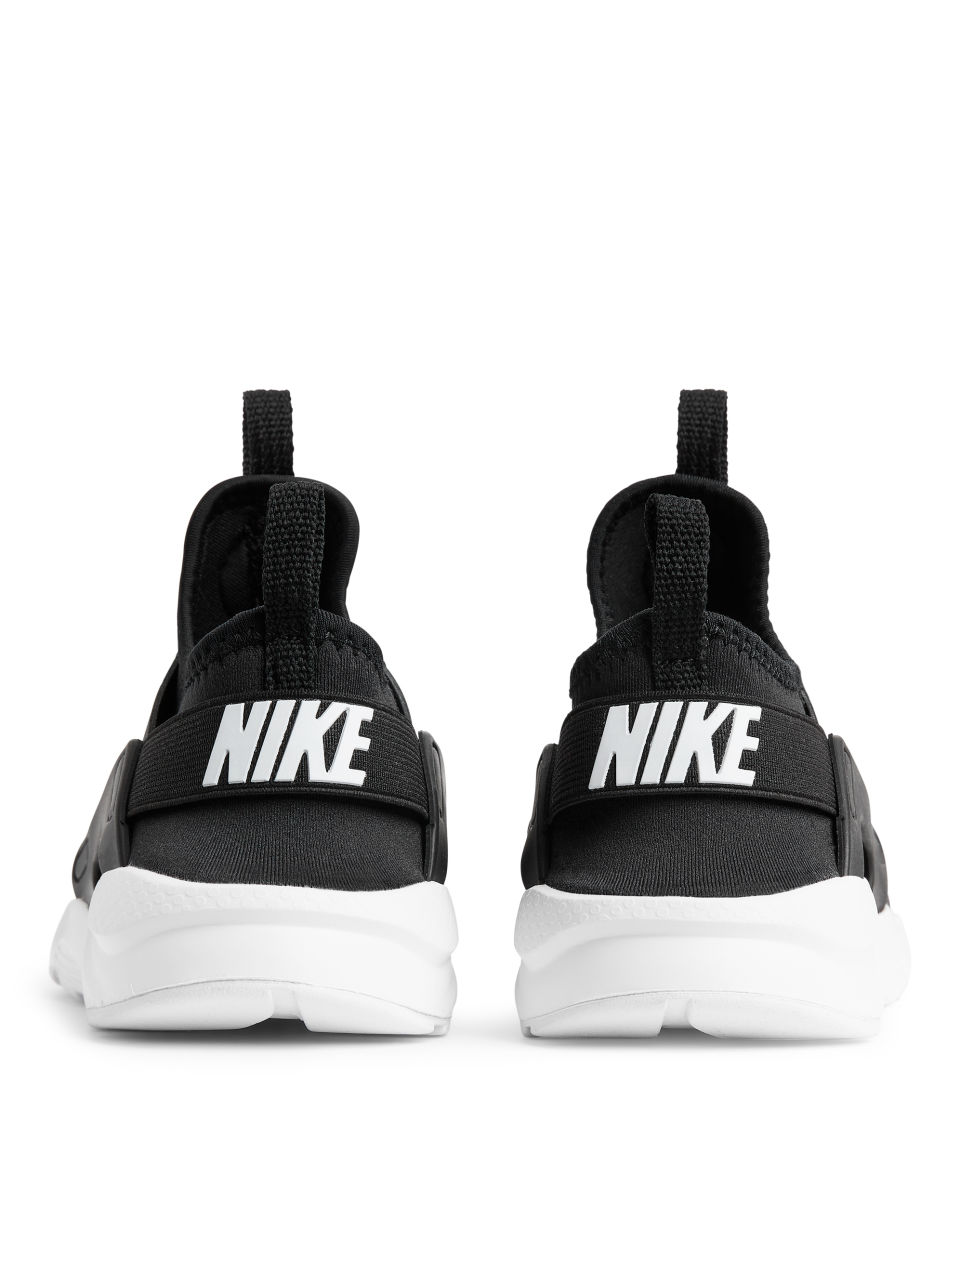 lowest price ff211 a7c05 ... Side image of Arket nike huarache run ultra in black ...